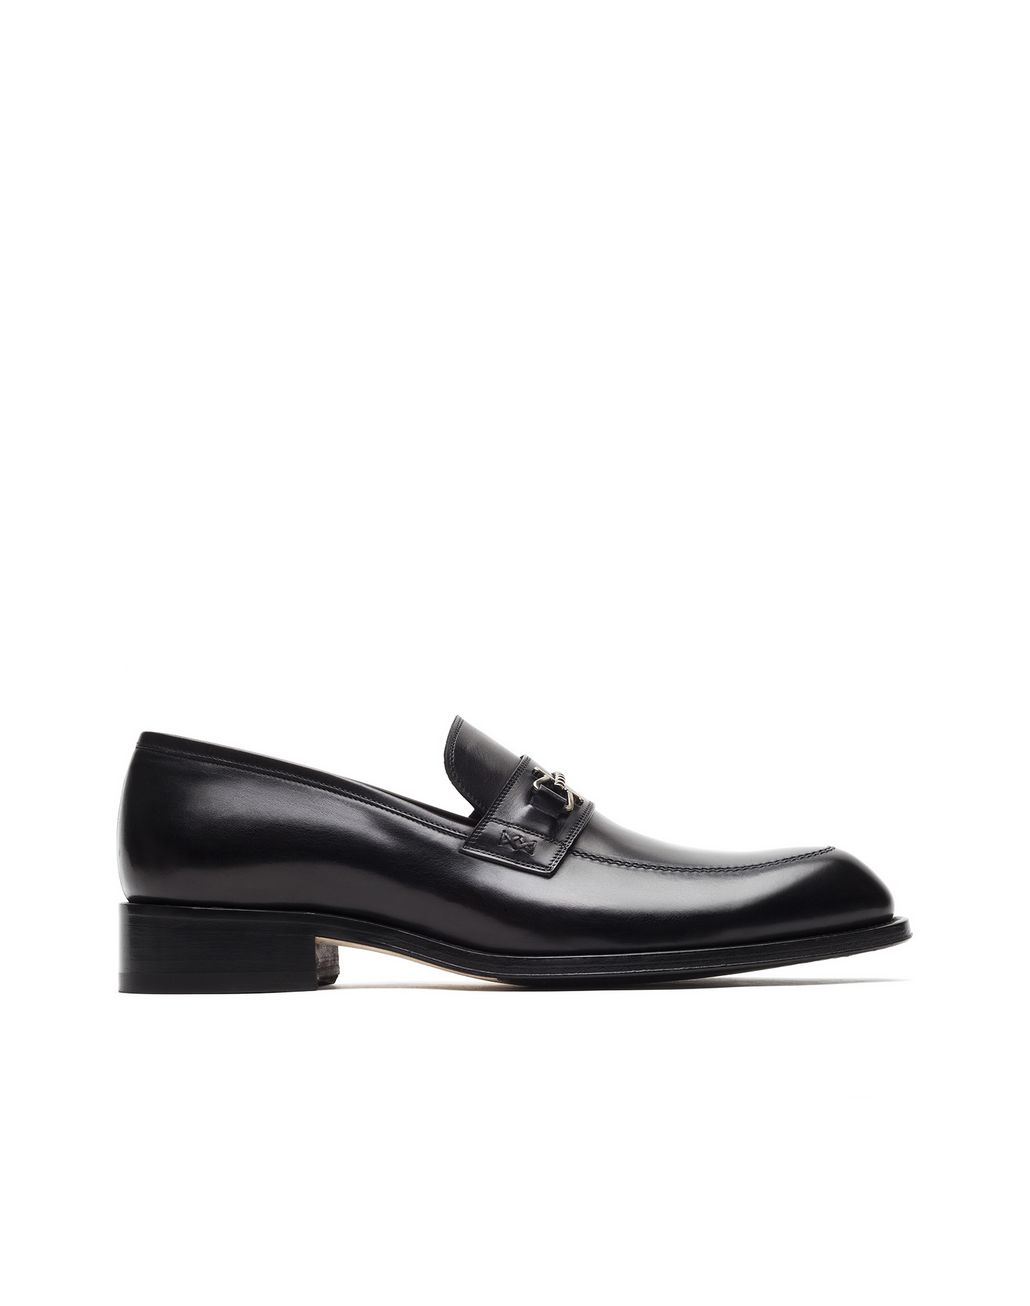 BRIONI Black Loafer with Metal Detail Loafers Man f